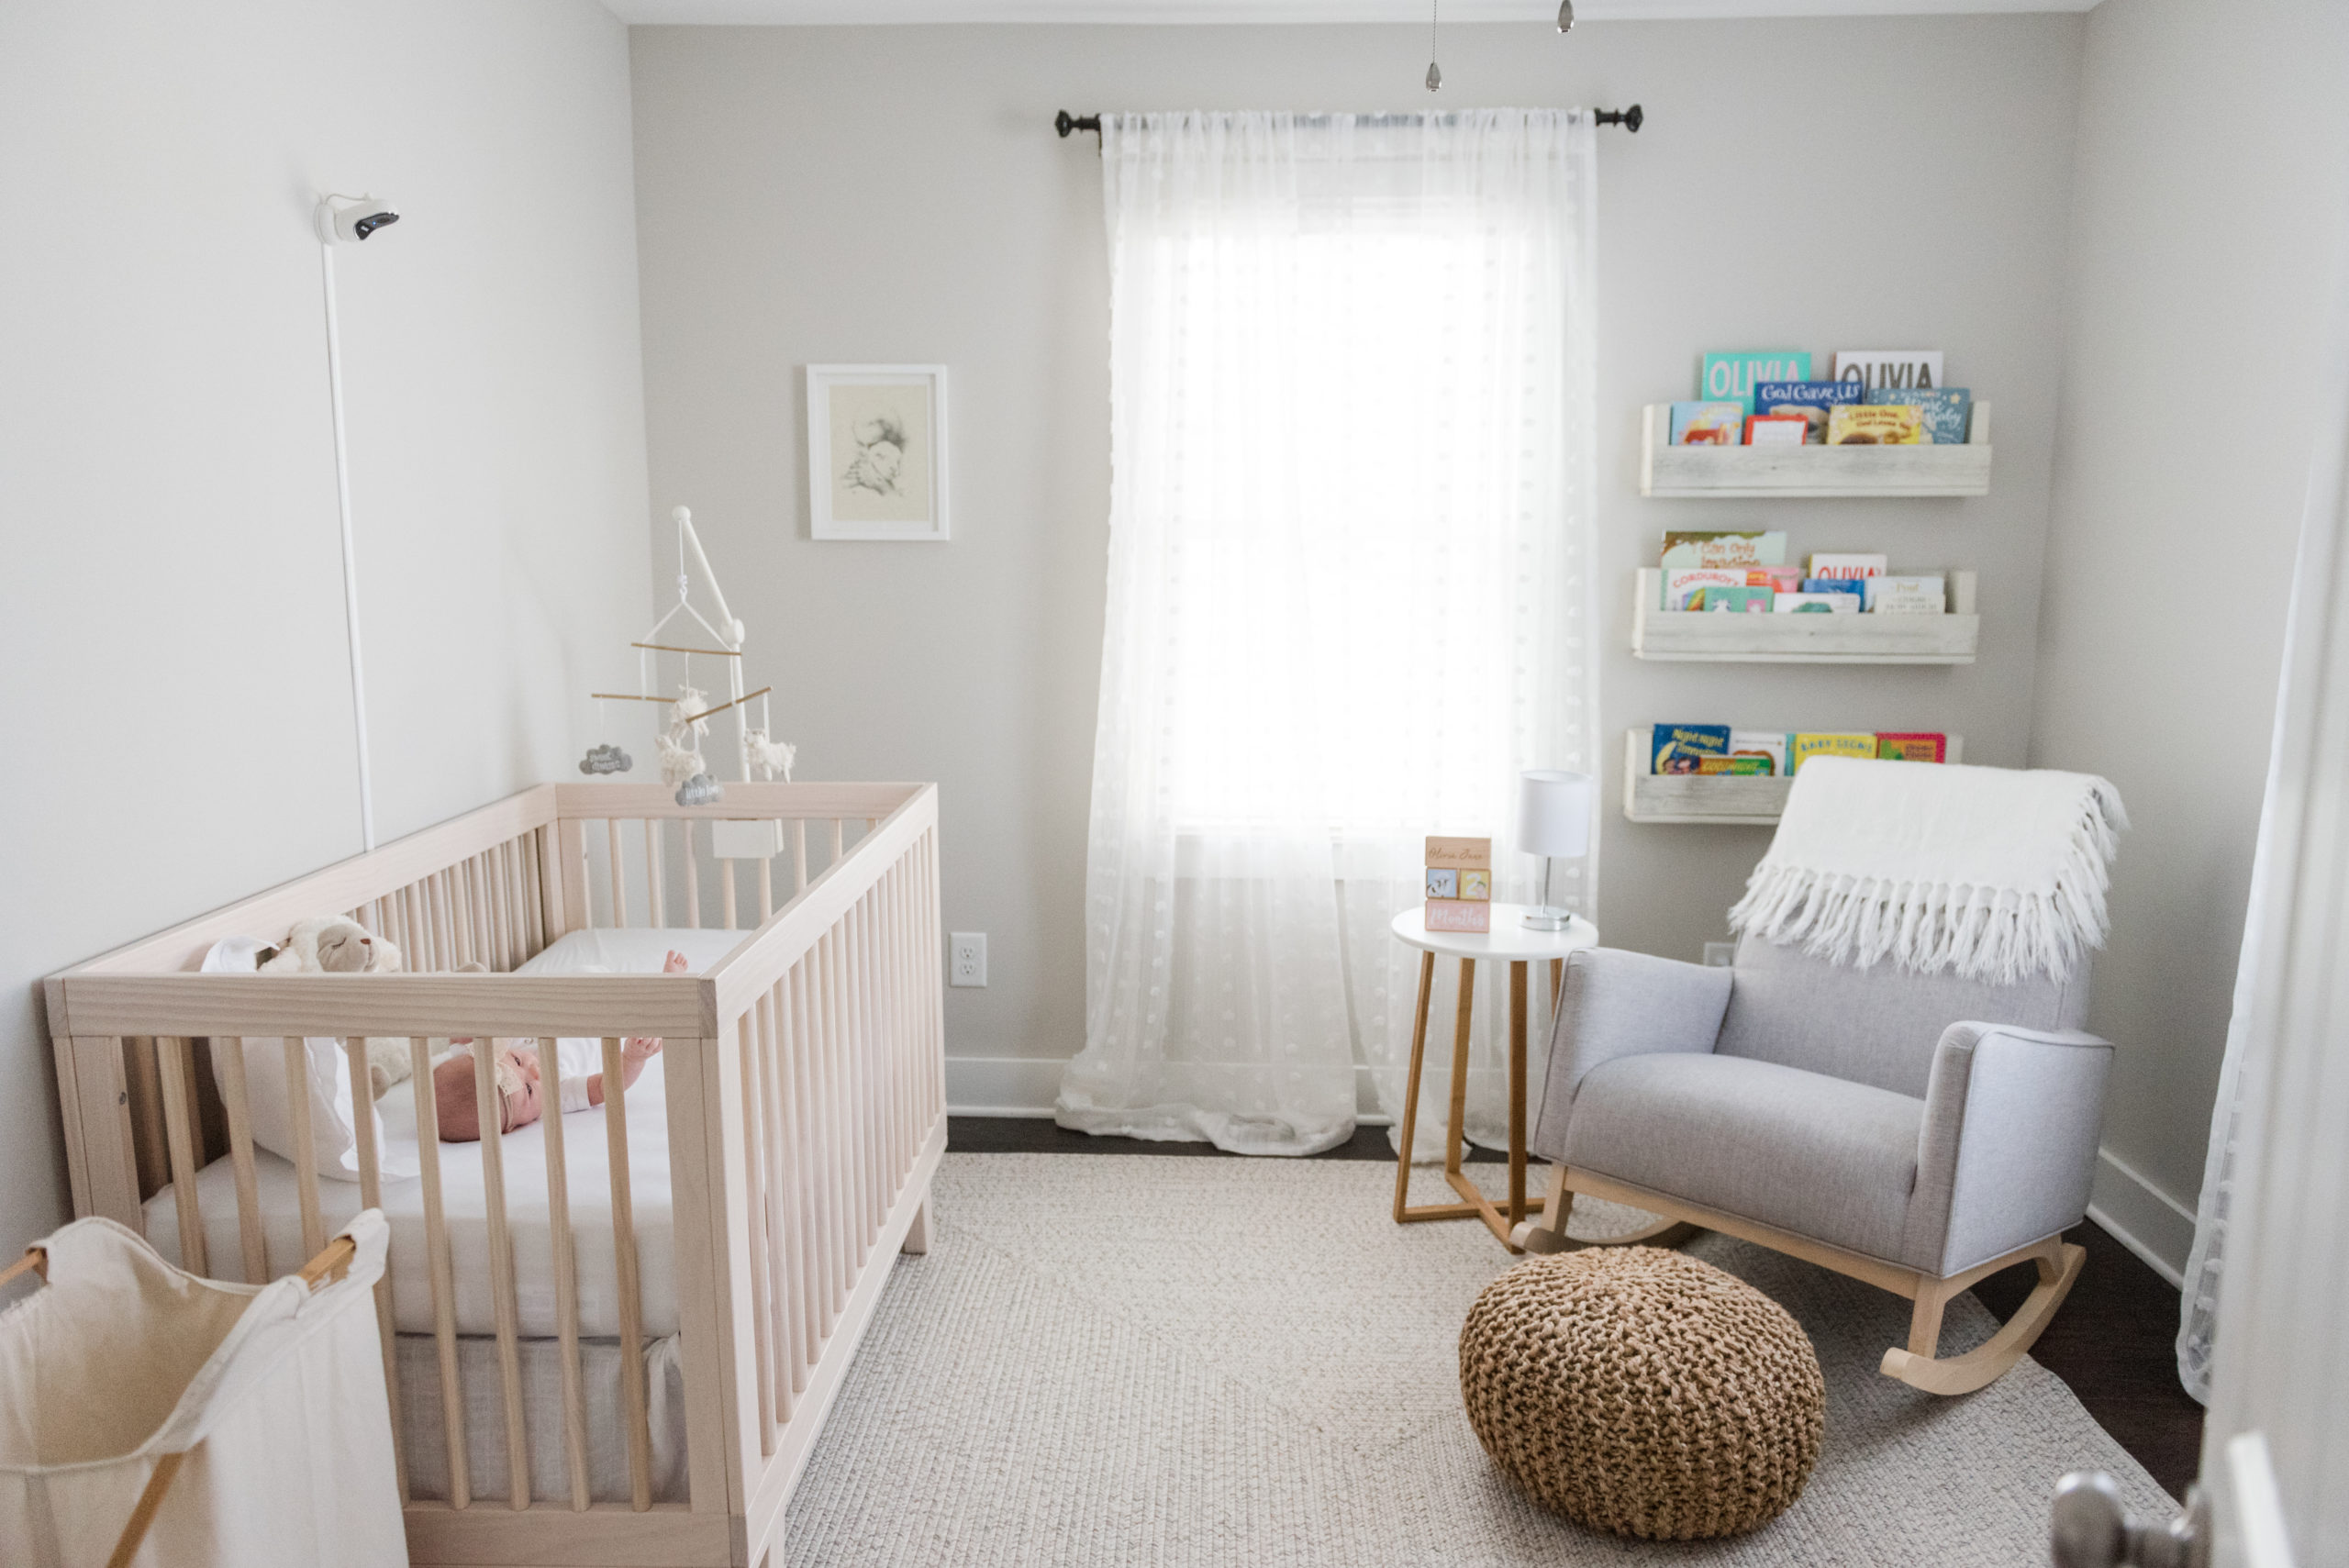 Olivia's Soft Gray and Neutral Lamb Baby Nursery - Sweet Williams Photography is a lifestyle, engagement and wedding photographer serving the Nashville, Tennessee area.